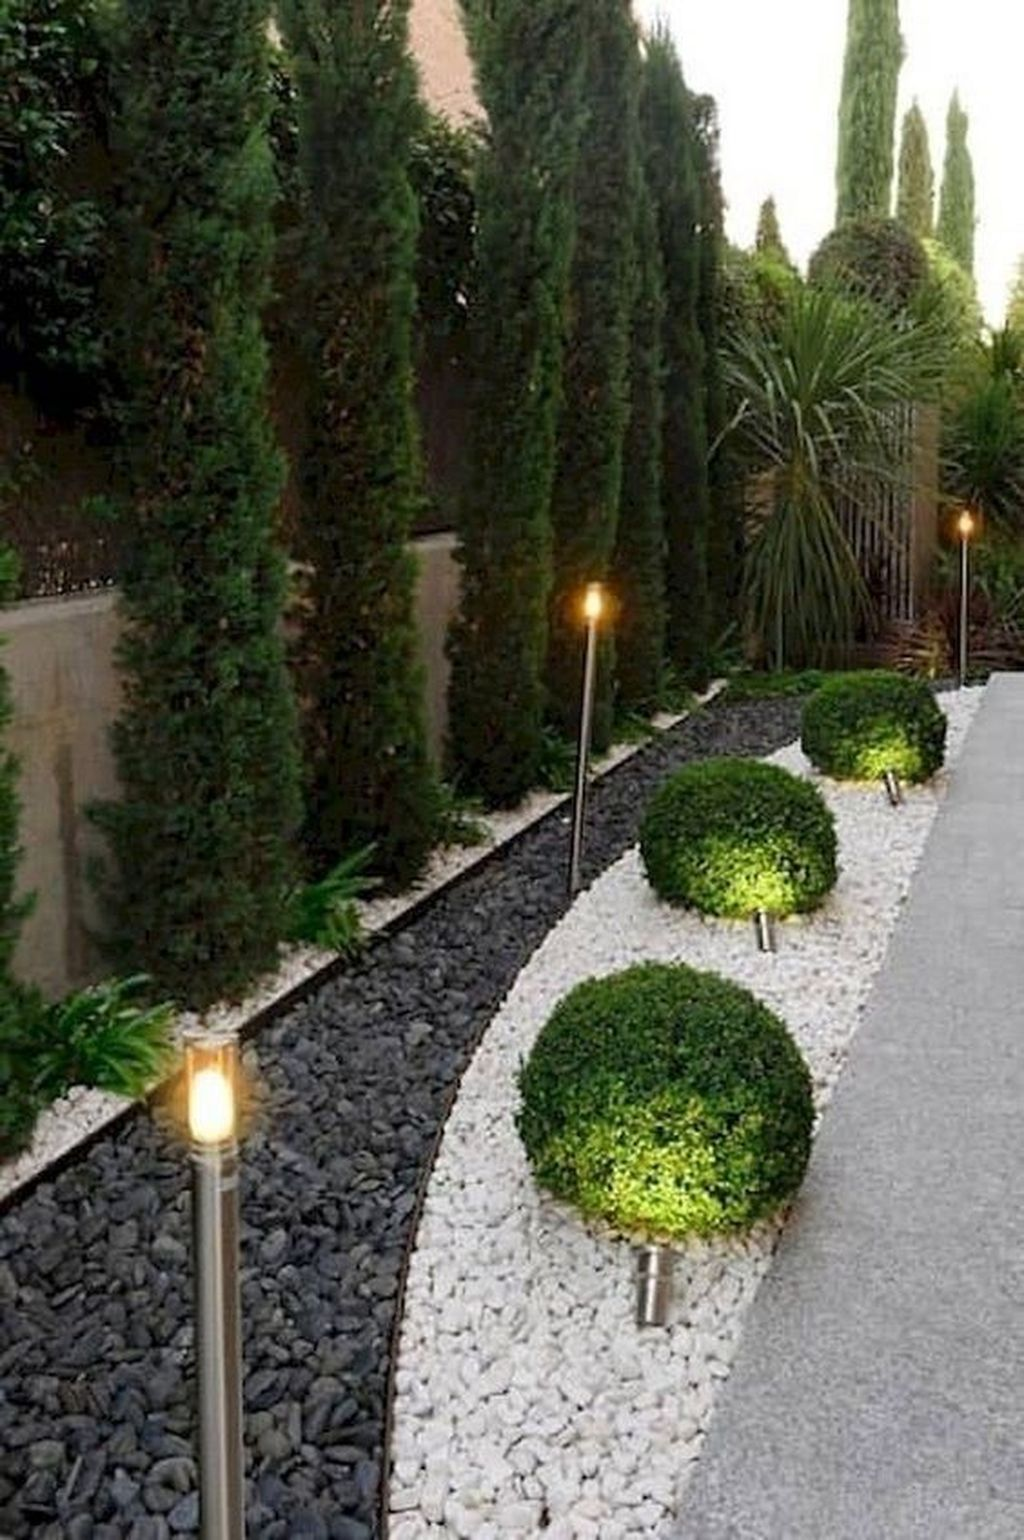 40 Front Yard Landscaping Design Ideas For Your Home 40 Front Yard Landscaping Design Ideas For Your Home  In general when you are landscaping a front yard you will have...